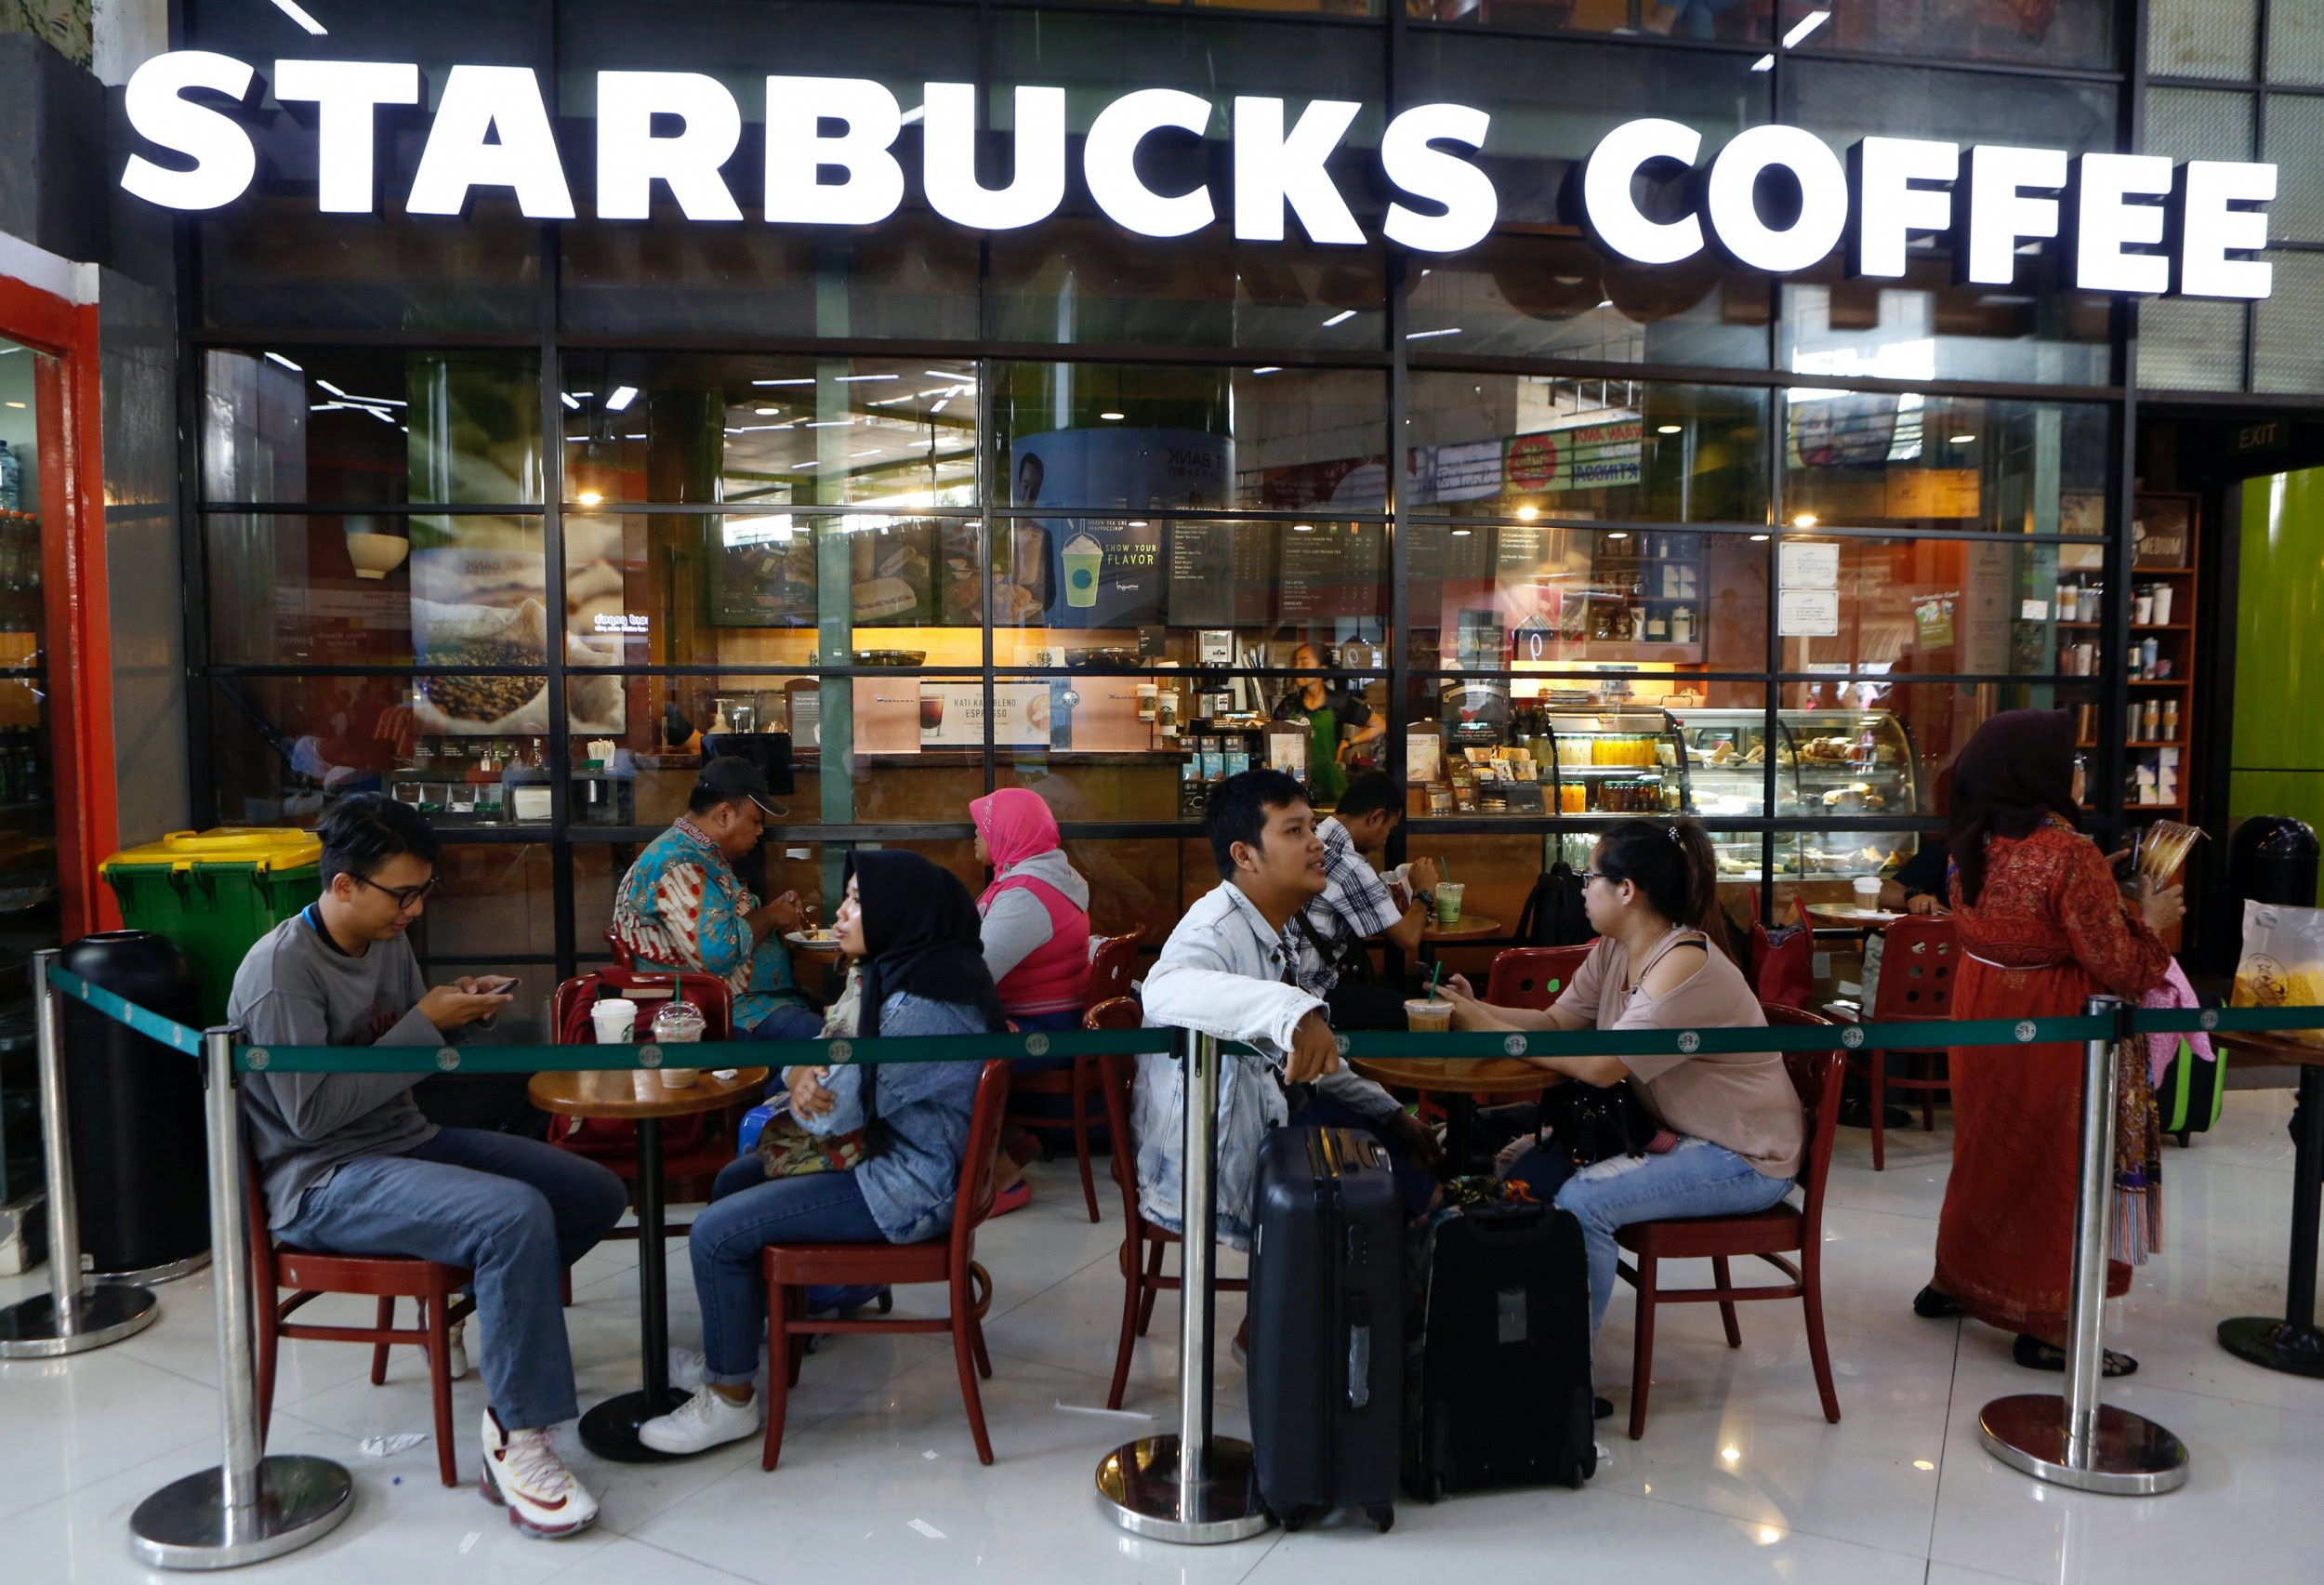 Gay Rights: Muslim Groups in Indonesia and Malaysia Demand Boycott on Starbucks for Its LGBT Support